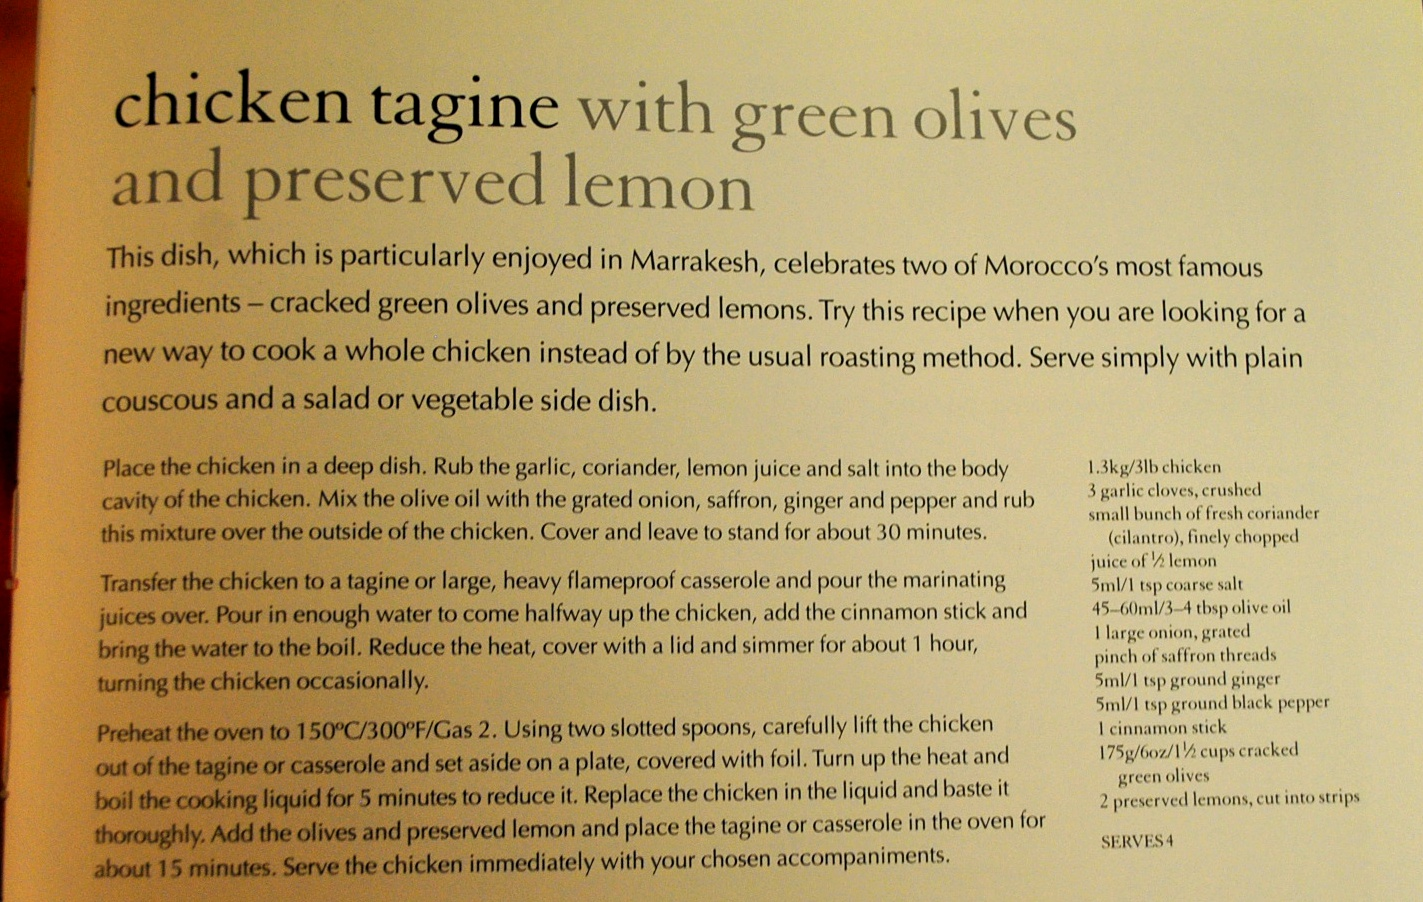 Gastronomery: Chicken Tagine with green olives and preserved lemon.